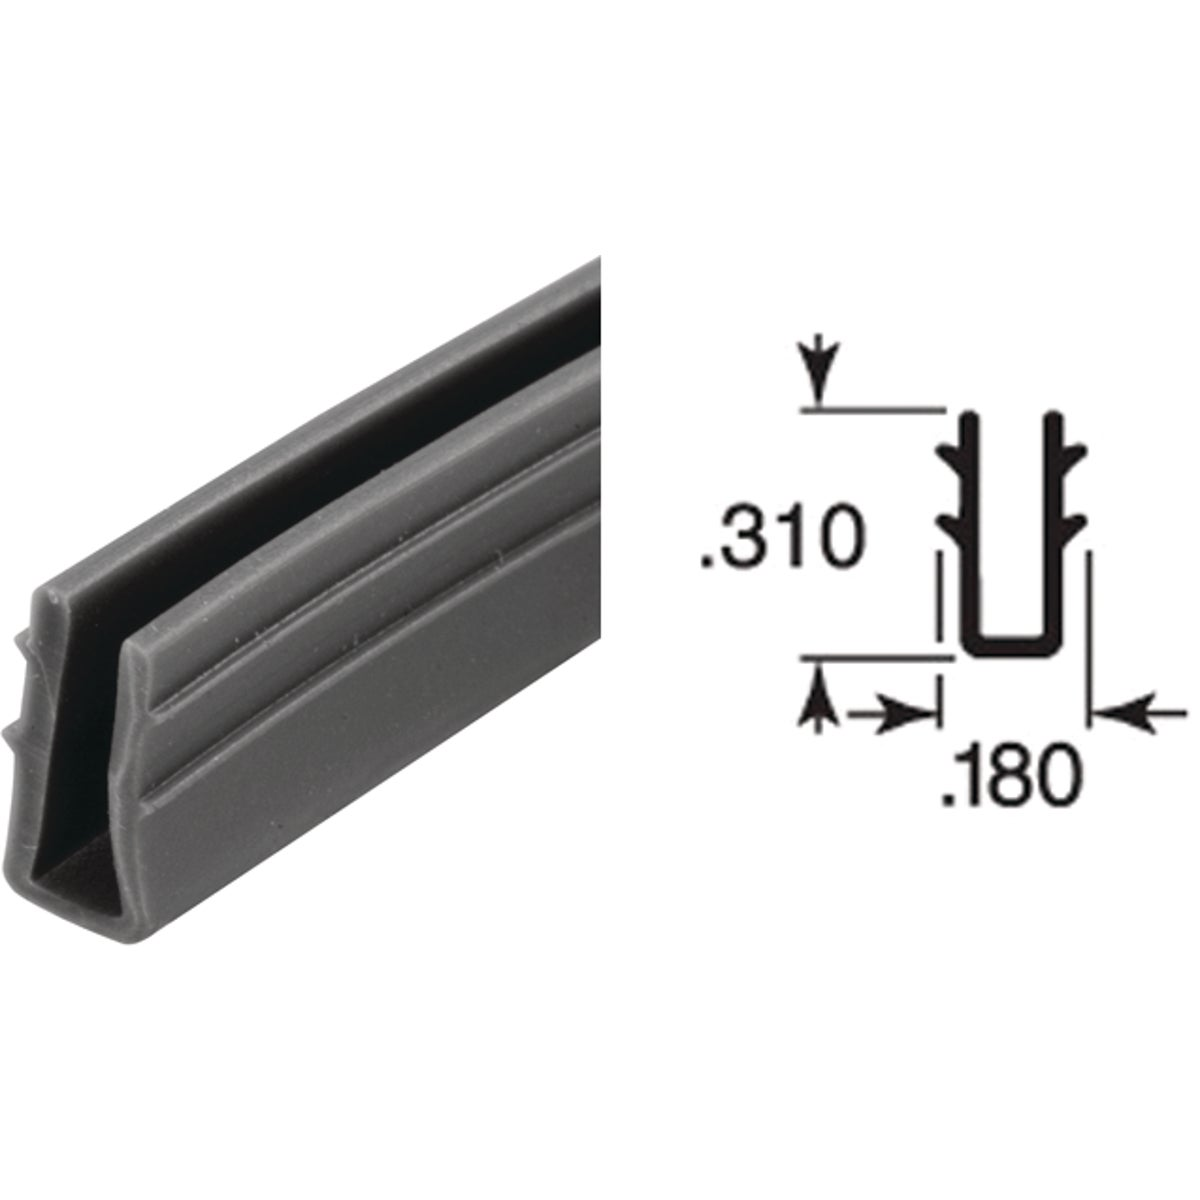 17/64X7/32X200 U-CHANNEL - P7738 by Prime Line Products